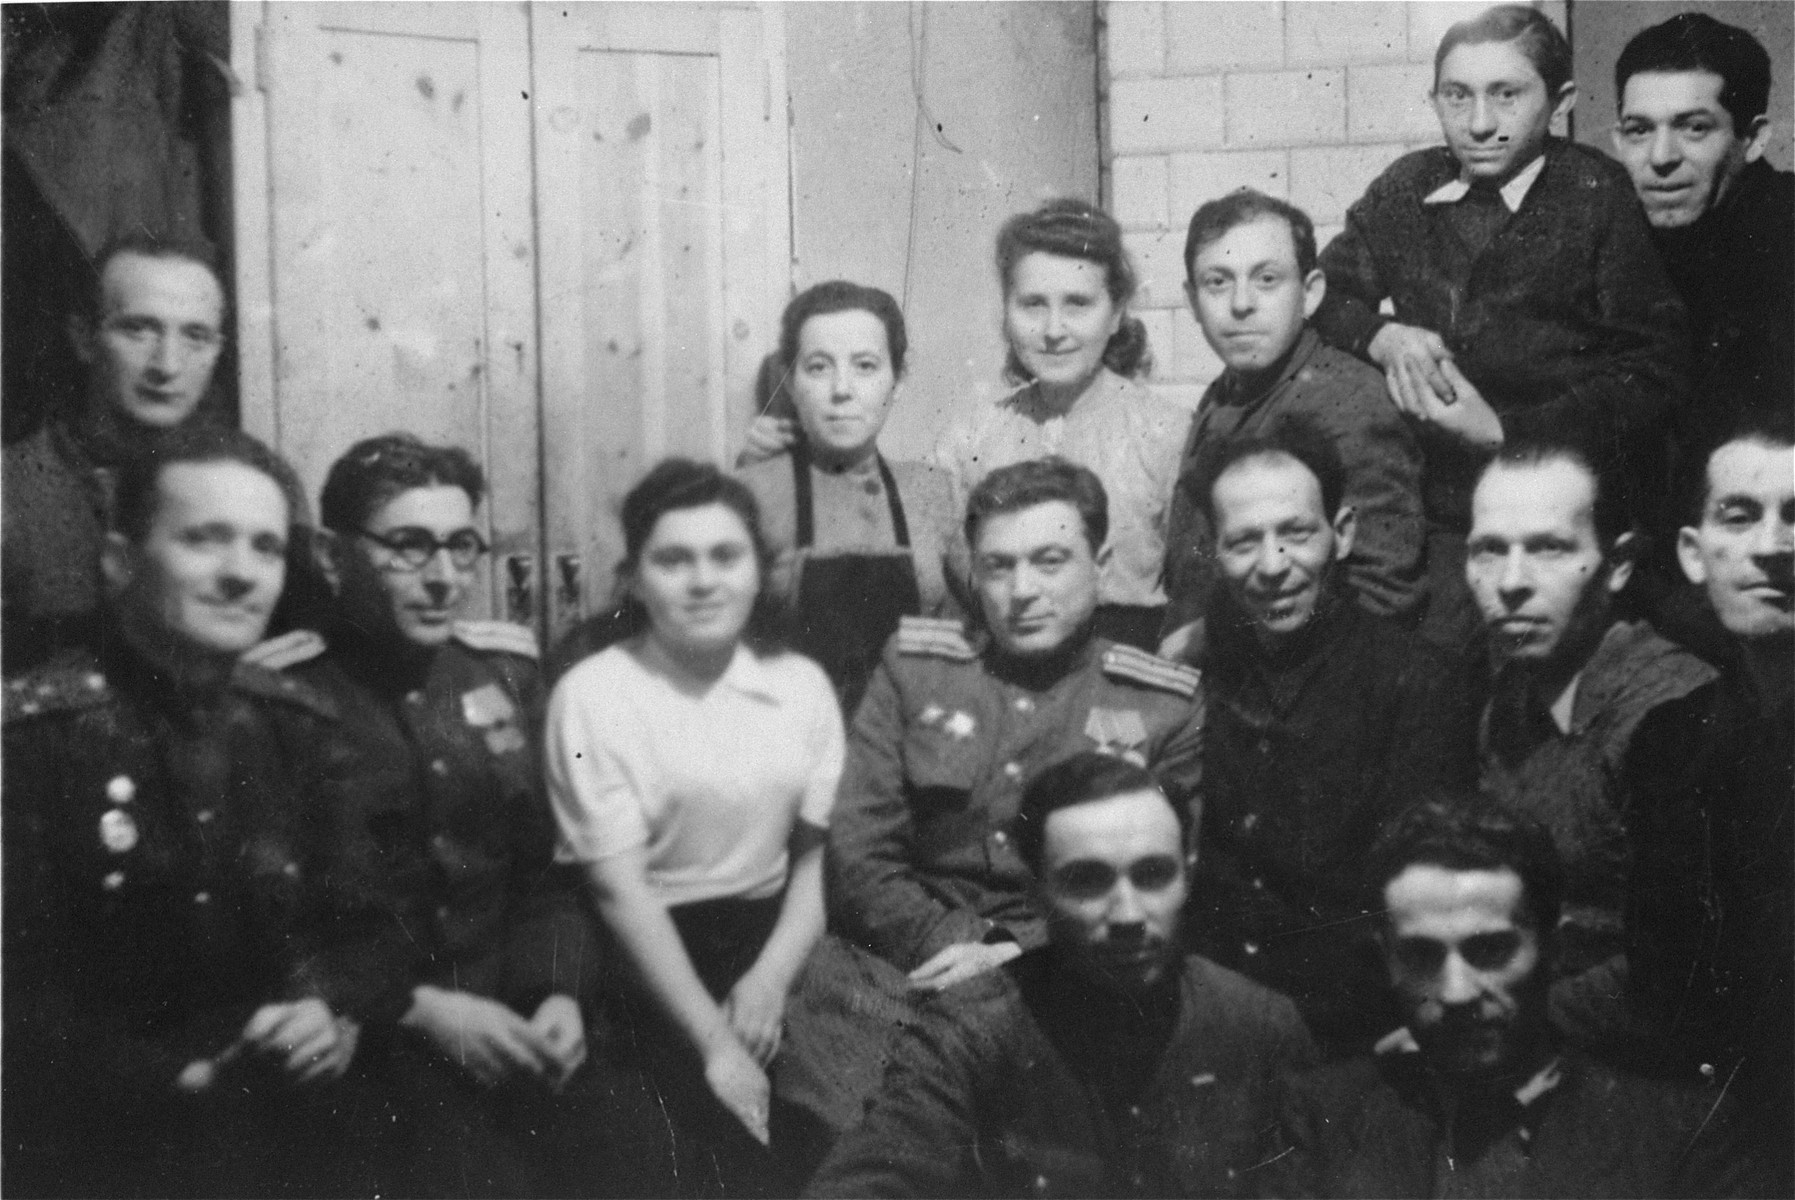 Jewish survivors in Czestochowa pose with Soviet soldiers and officers who liberated the area.  Among those pictured are Jack and Hela Shipper, Laibish Kornberg and Hershel Proszeh.